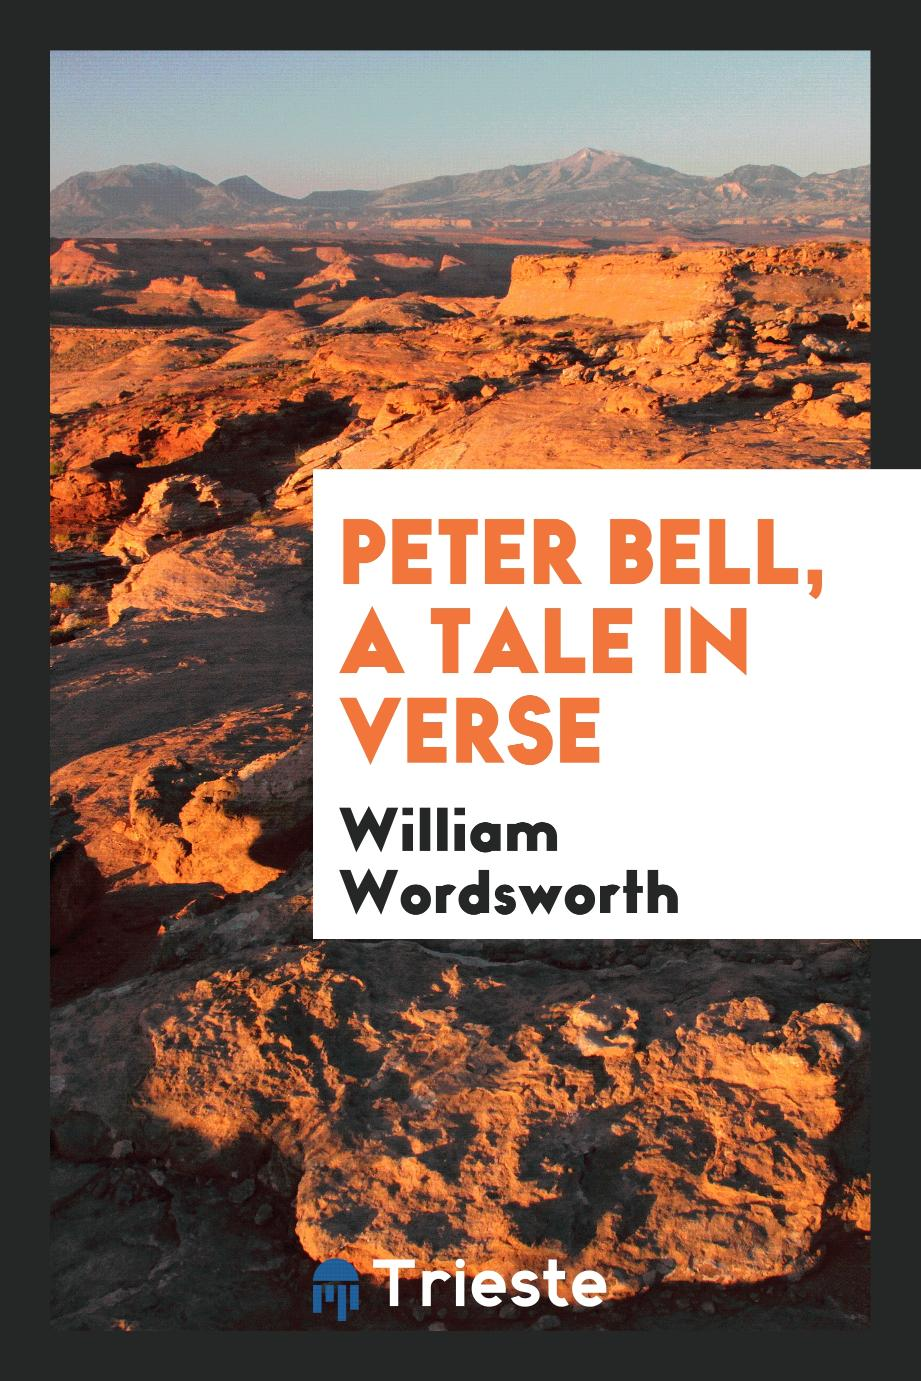 Peter Bell, A Tale in Verse